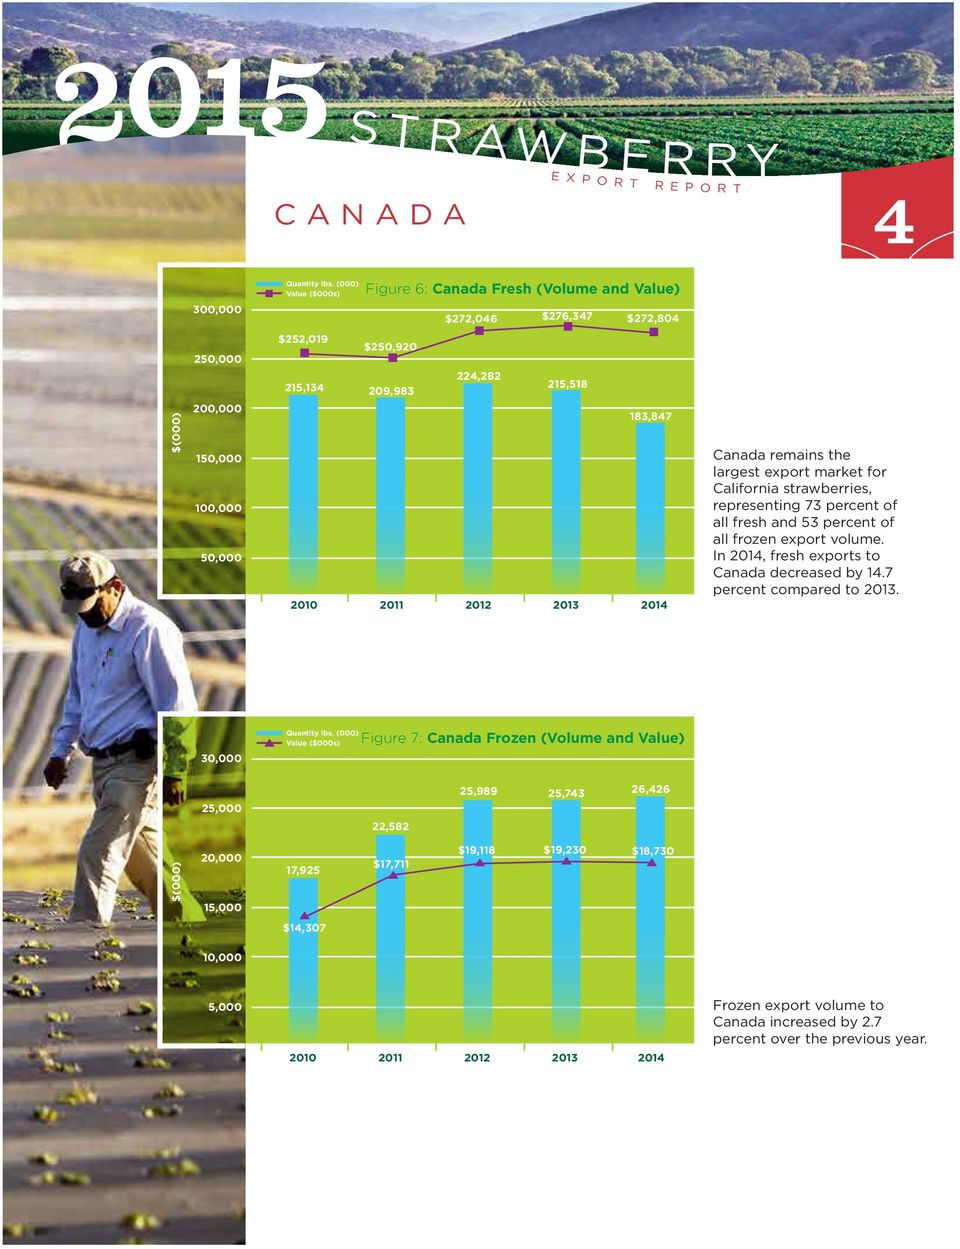 export volume. In 2014, fresh exports to Canada decreased by 14.7 percent compared to 2013.